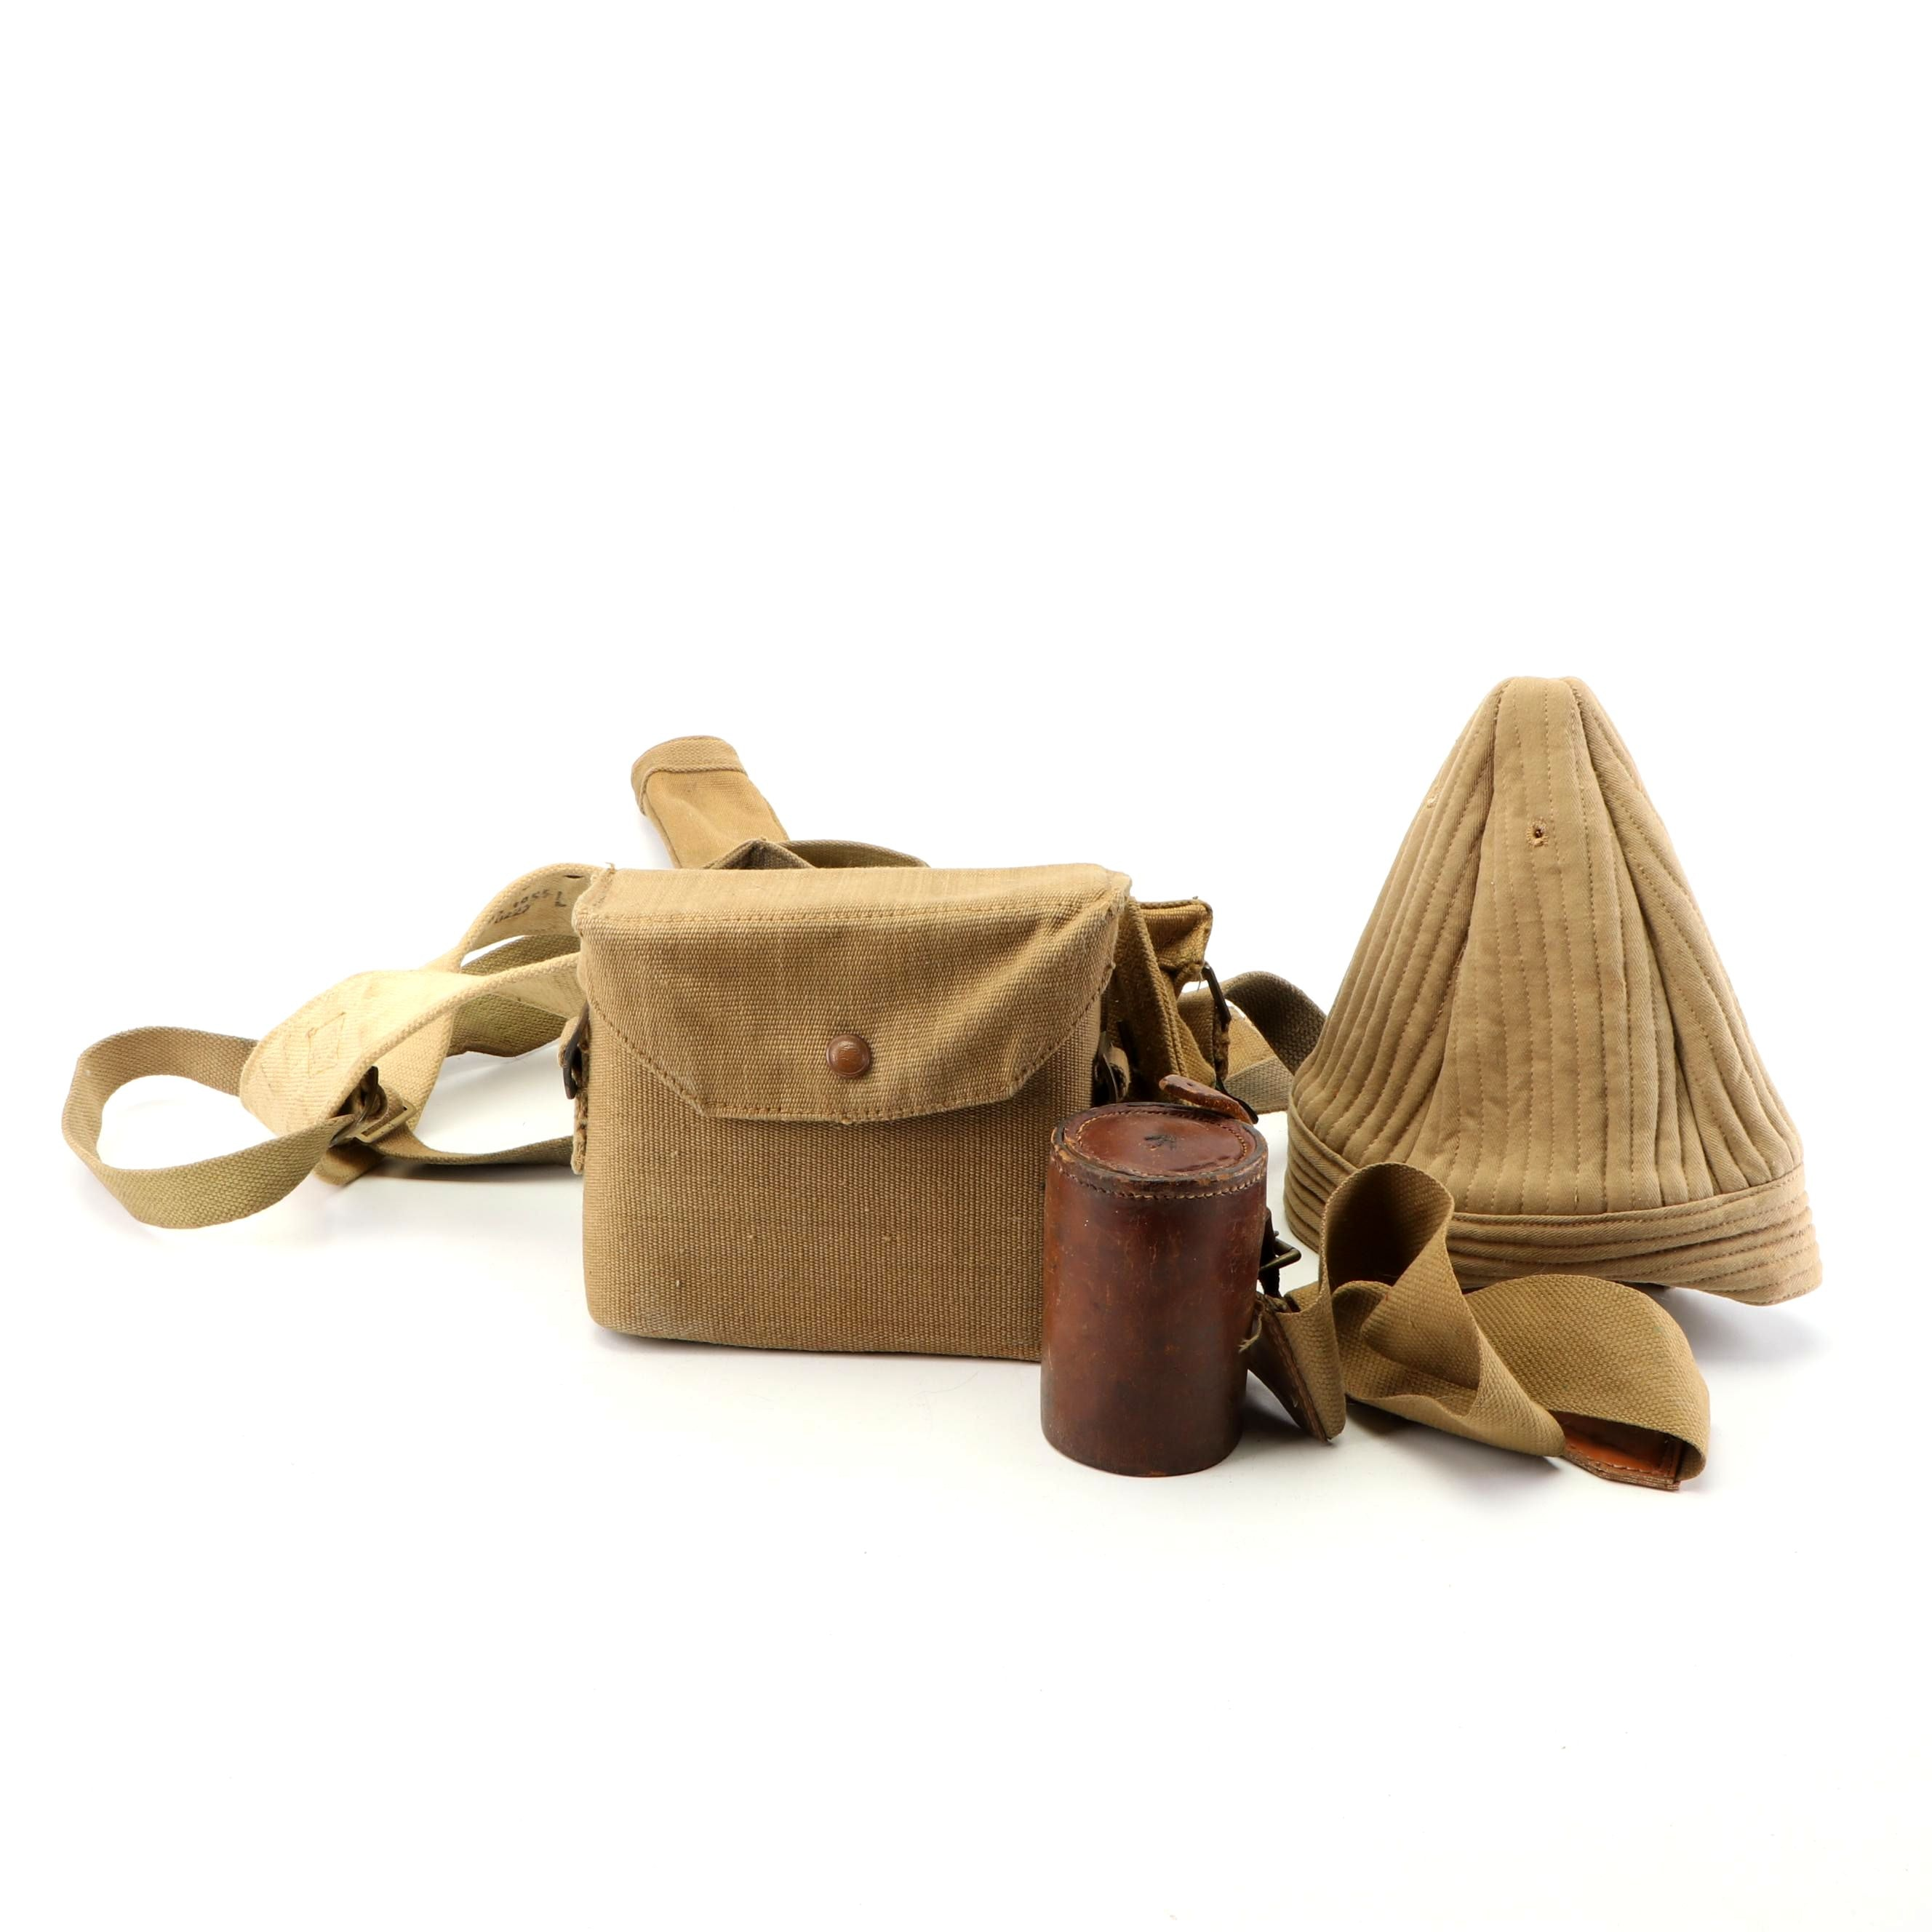 Southerner Military Field Binoculars with Belt, Case and Quilted Hat